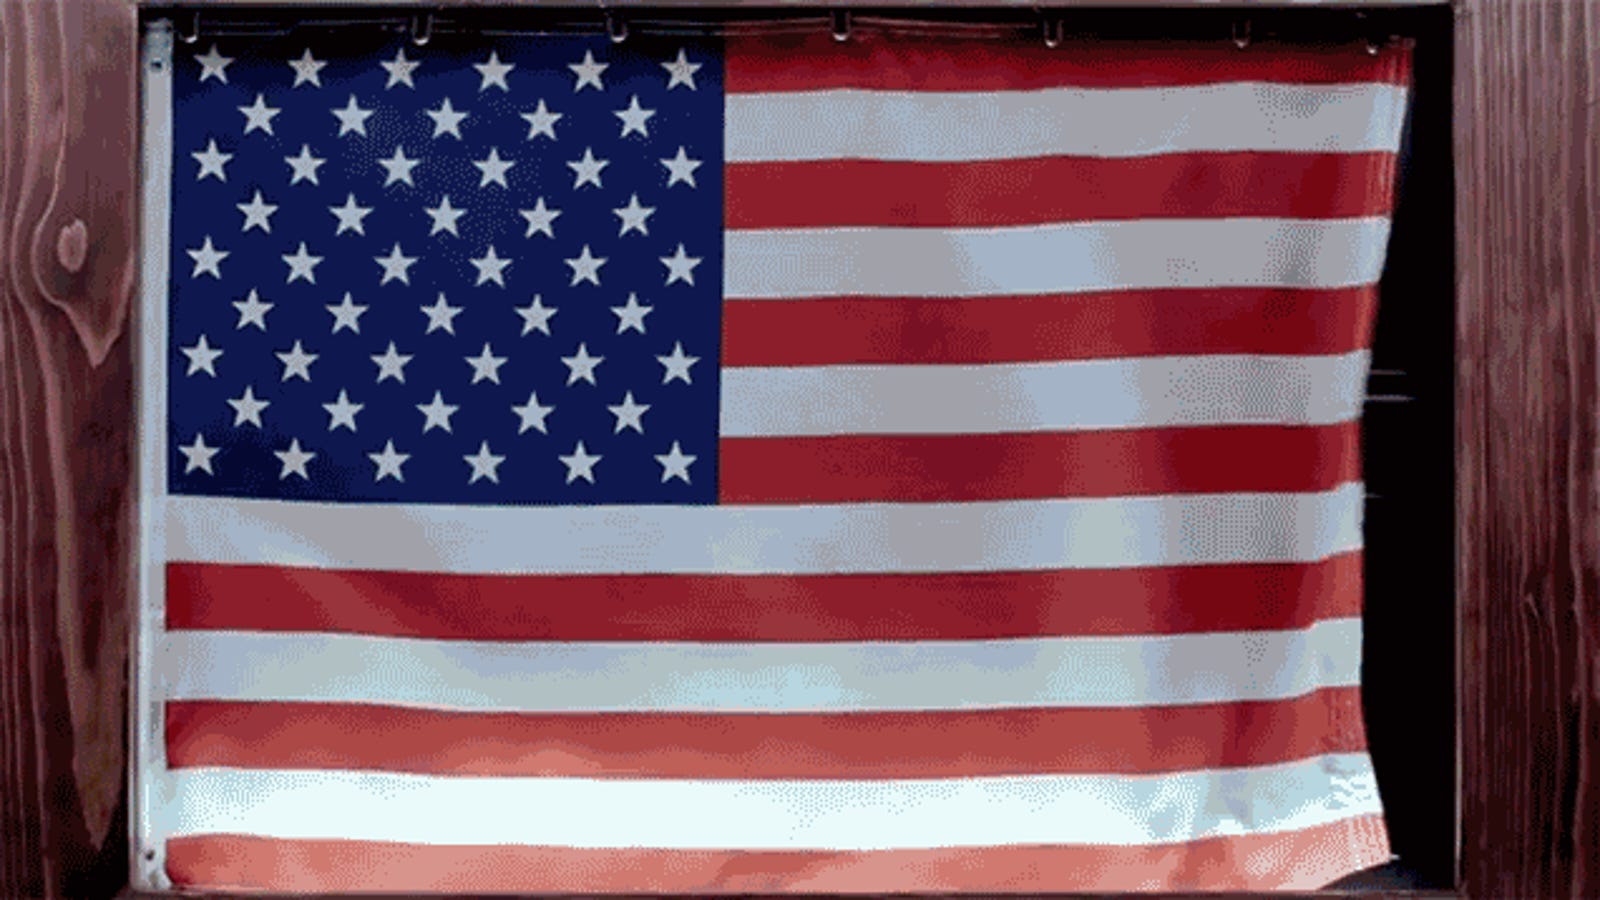 real patriots use a flag frame that simulates it blowing in the wind